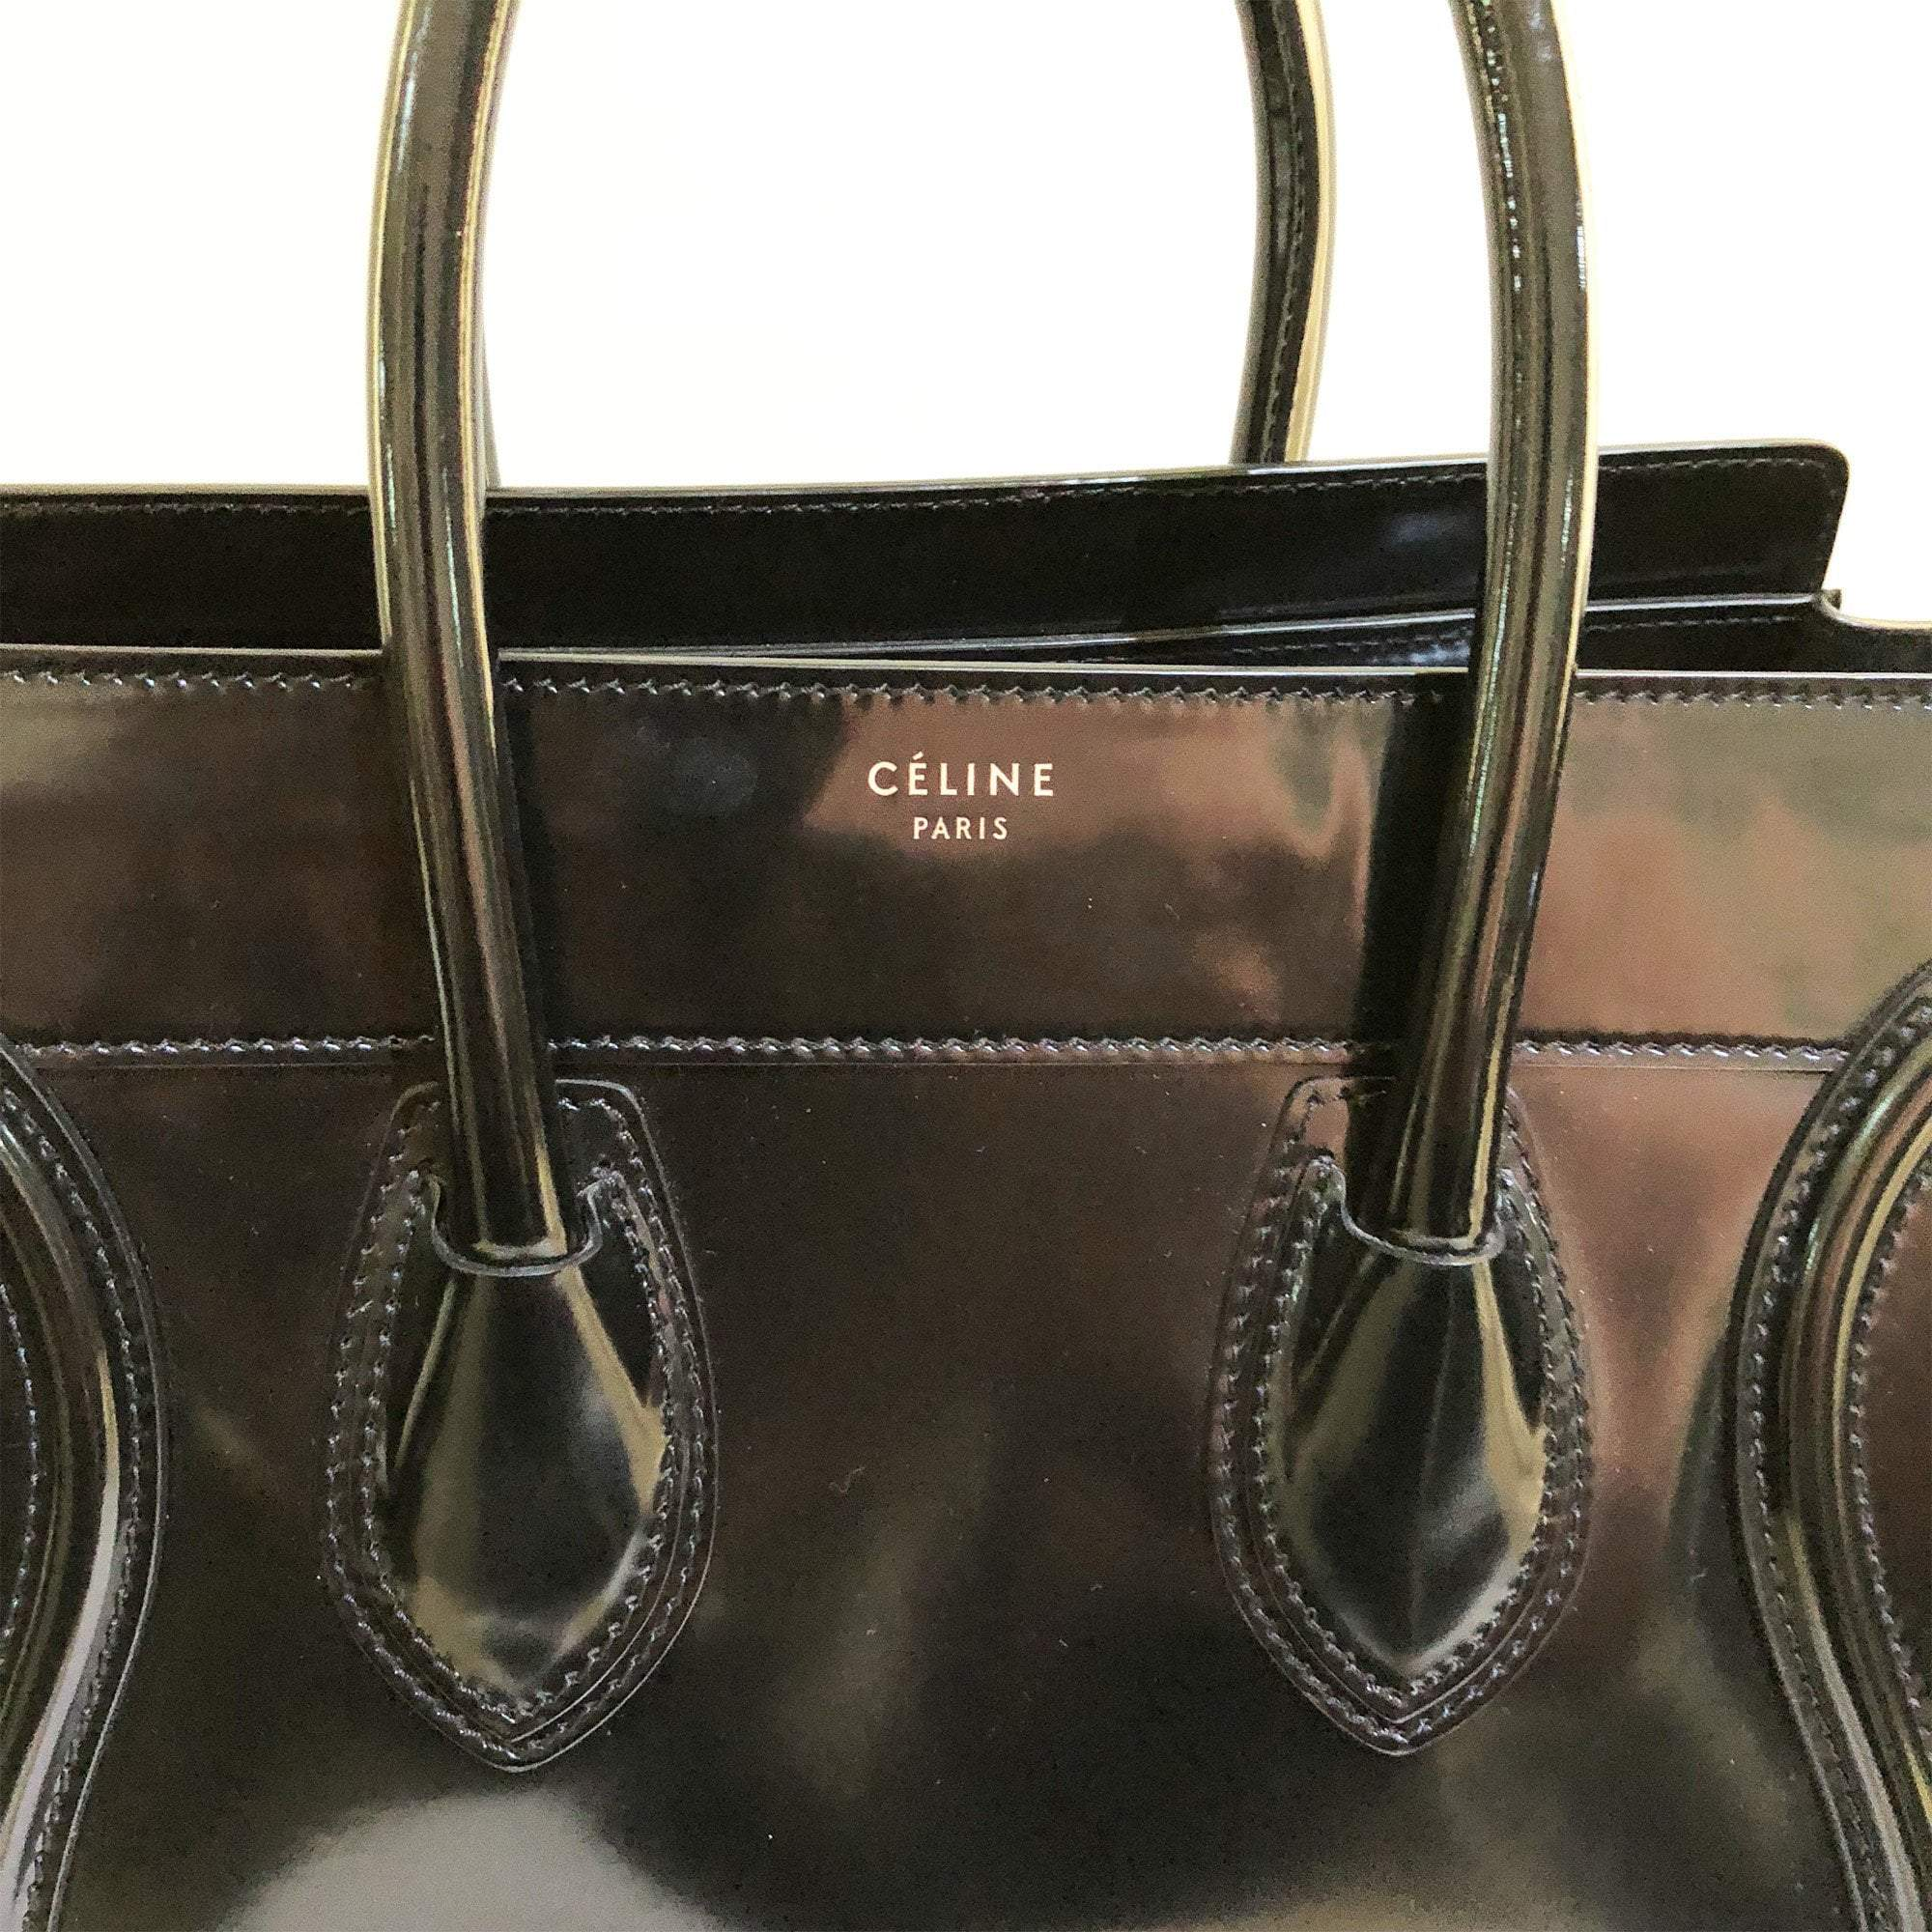 Celine Luggage Patent Leather Medium Tote Bag